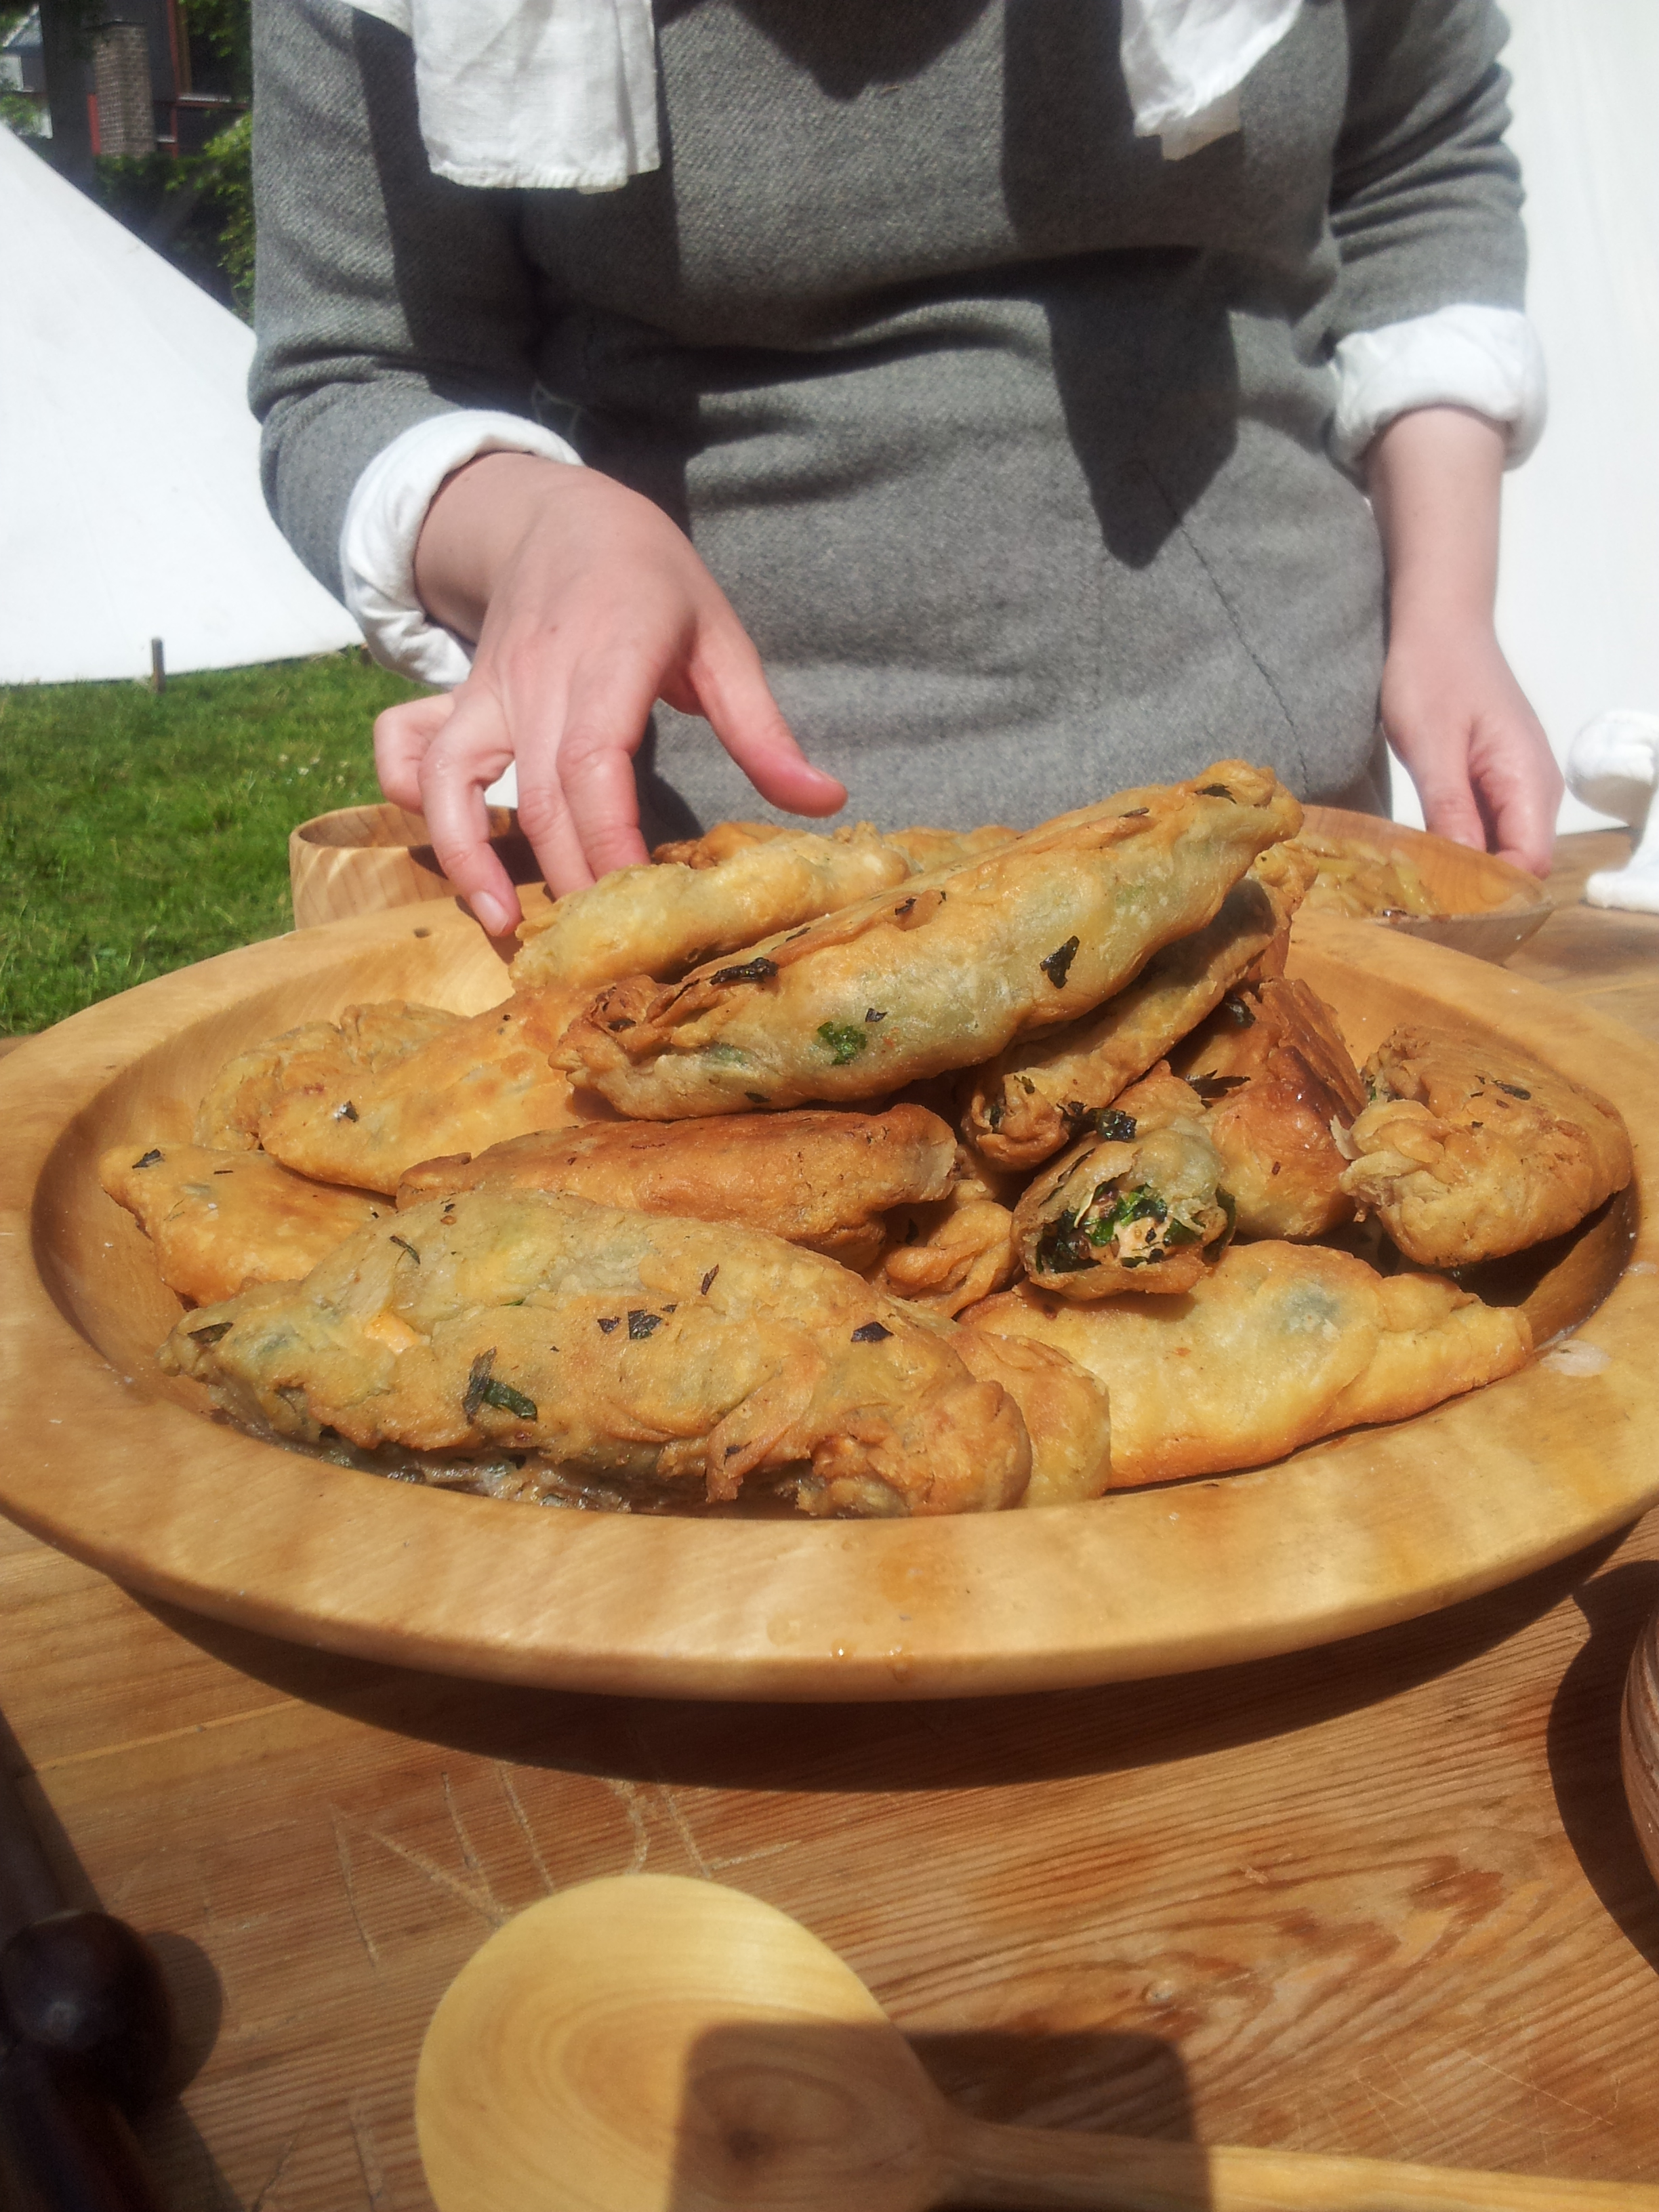 The finished salmon pasties, Lund, 2012